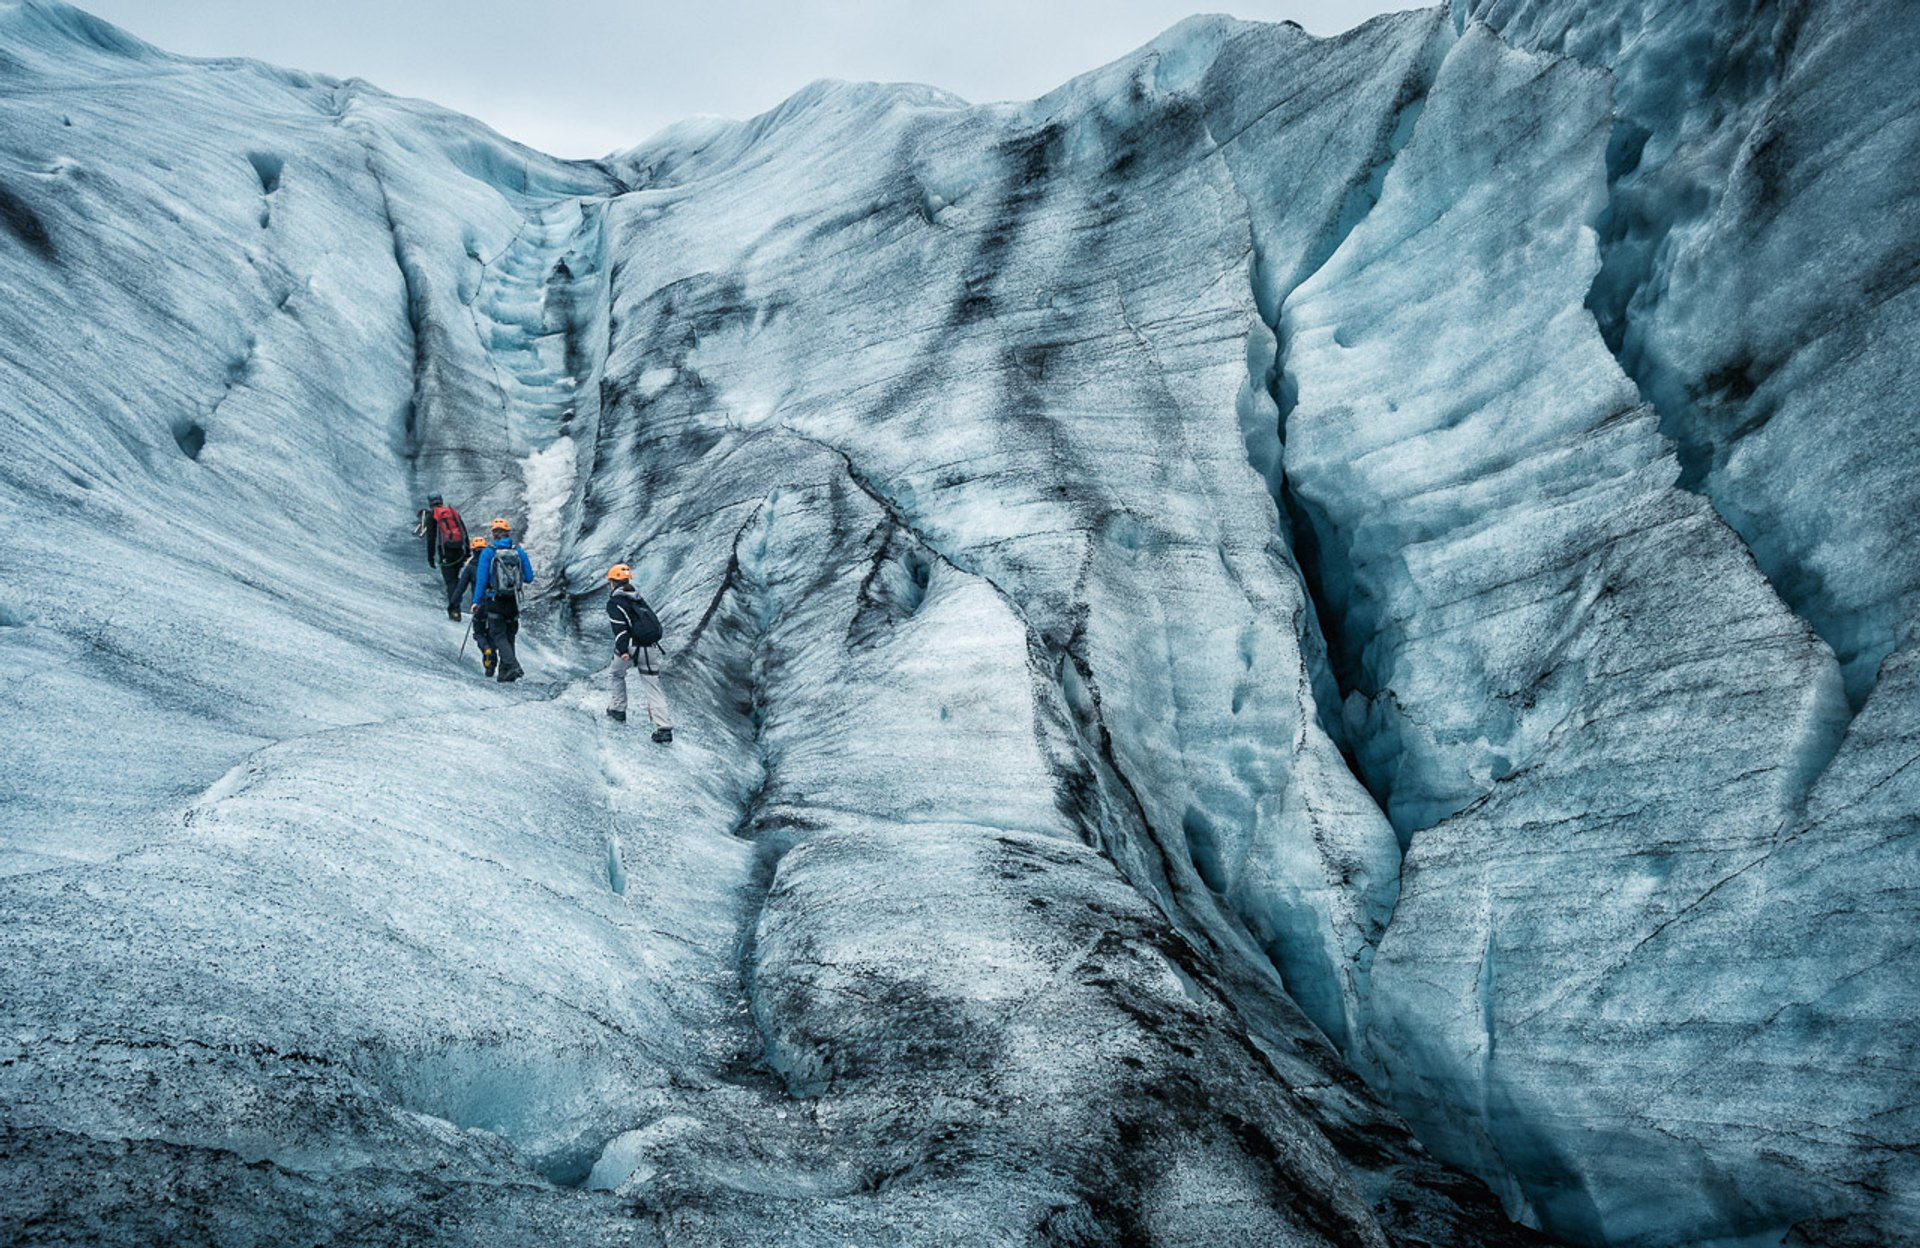 Glacier Walking in Iceland 2020 - Best Time